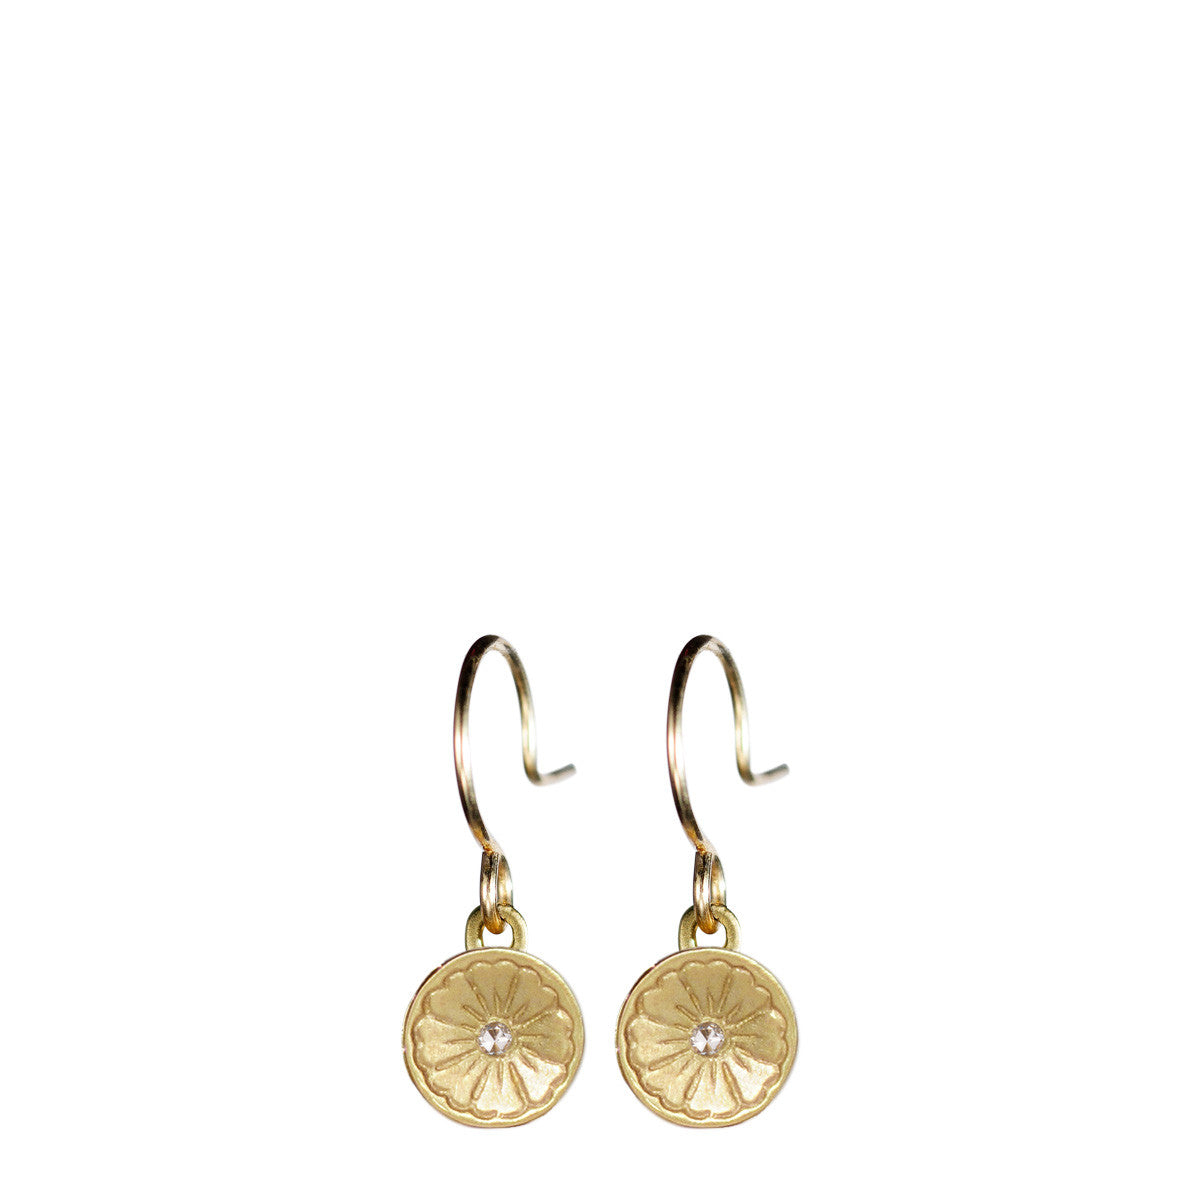 10K Gold Engraved Flower Earring with Diamond